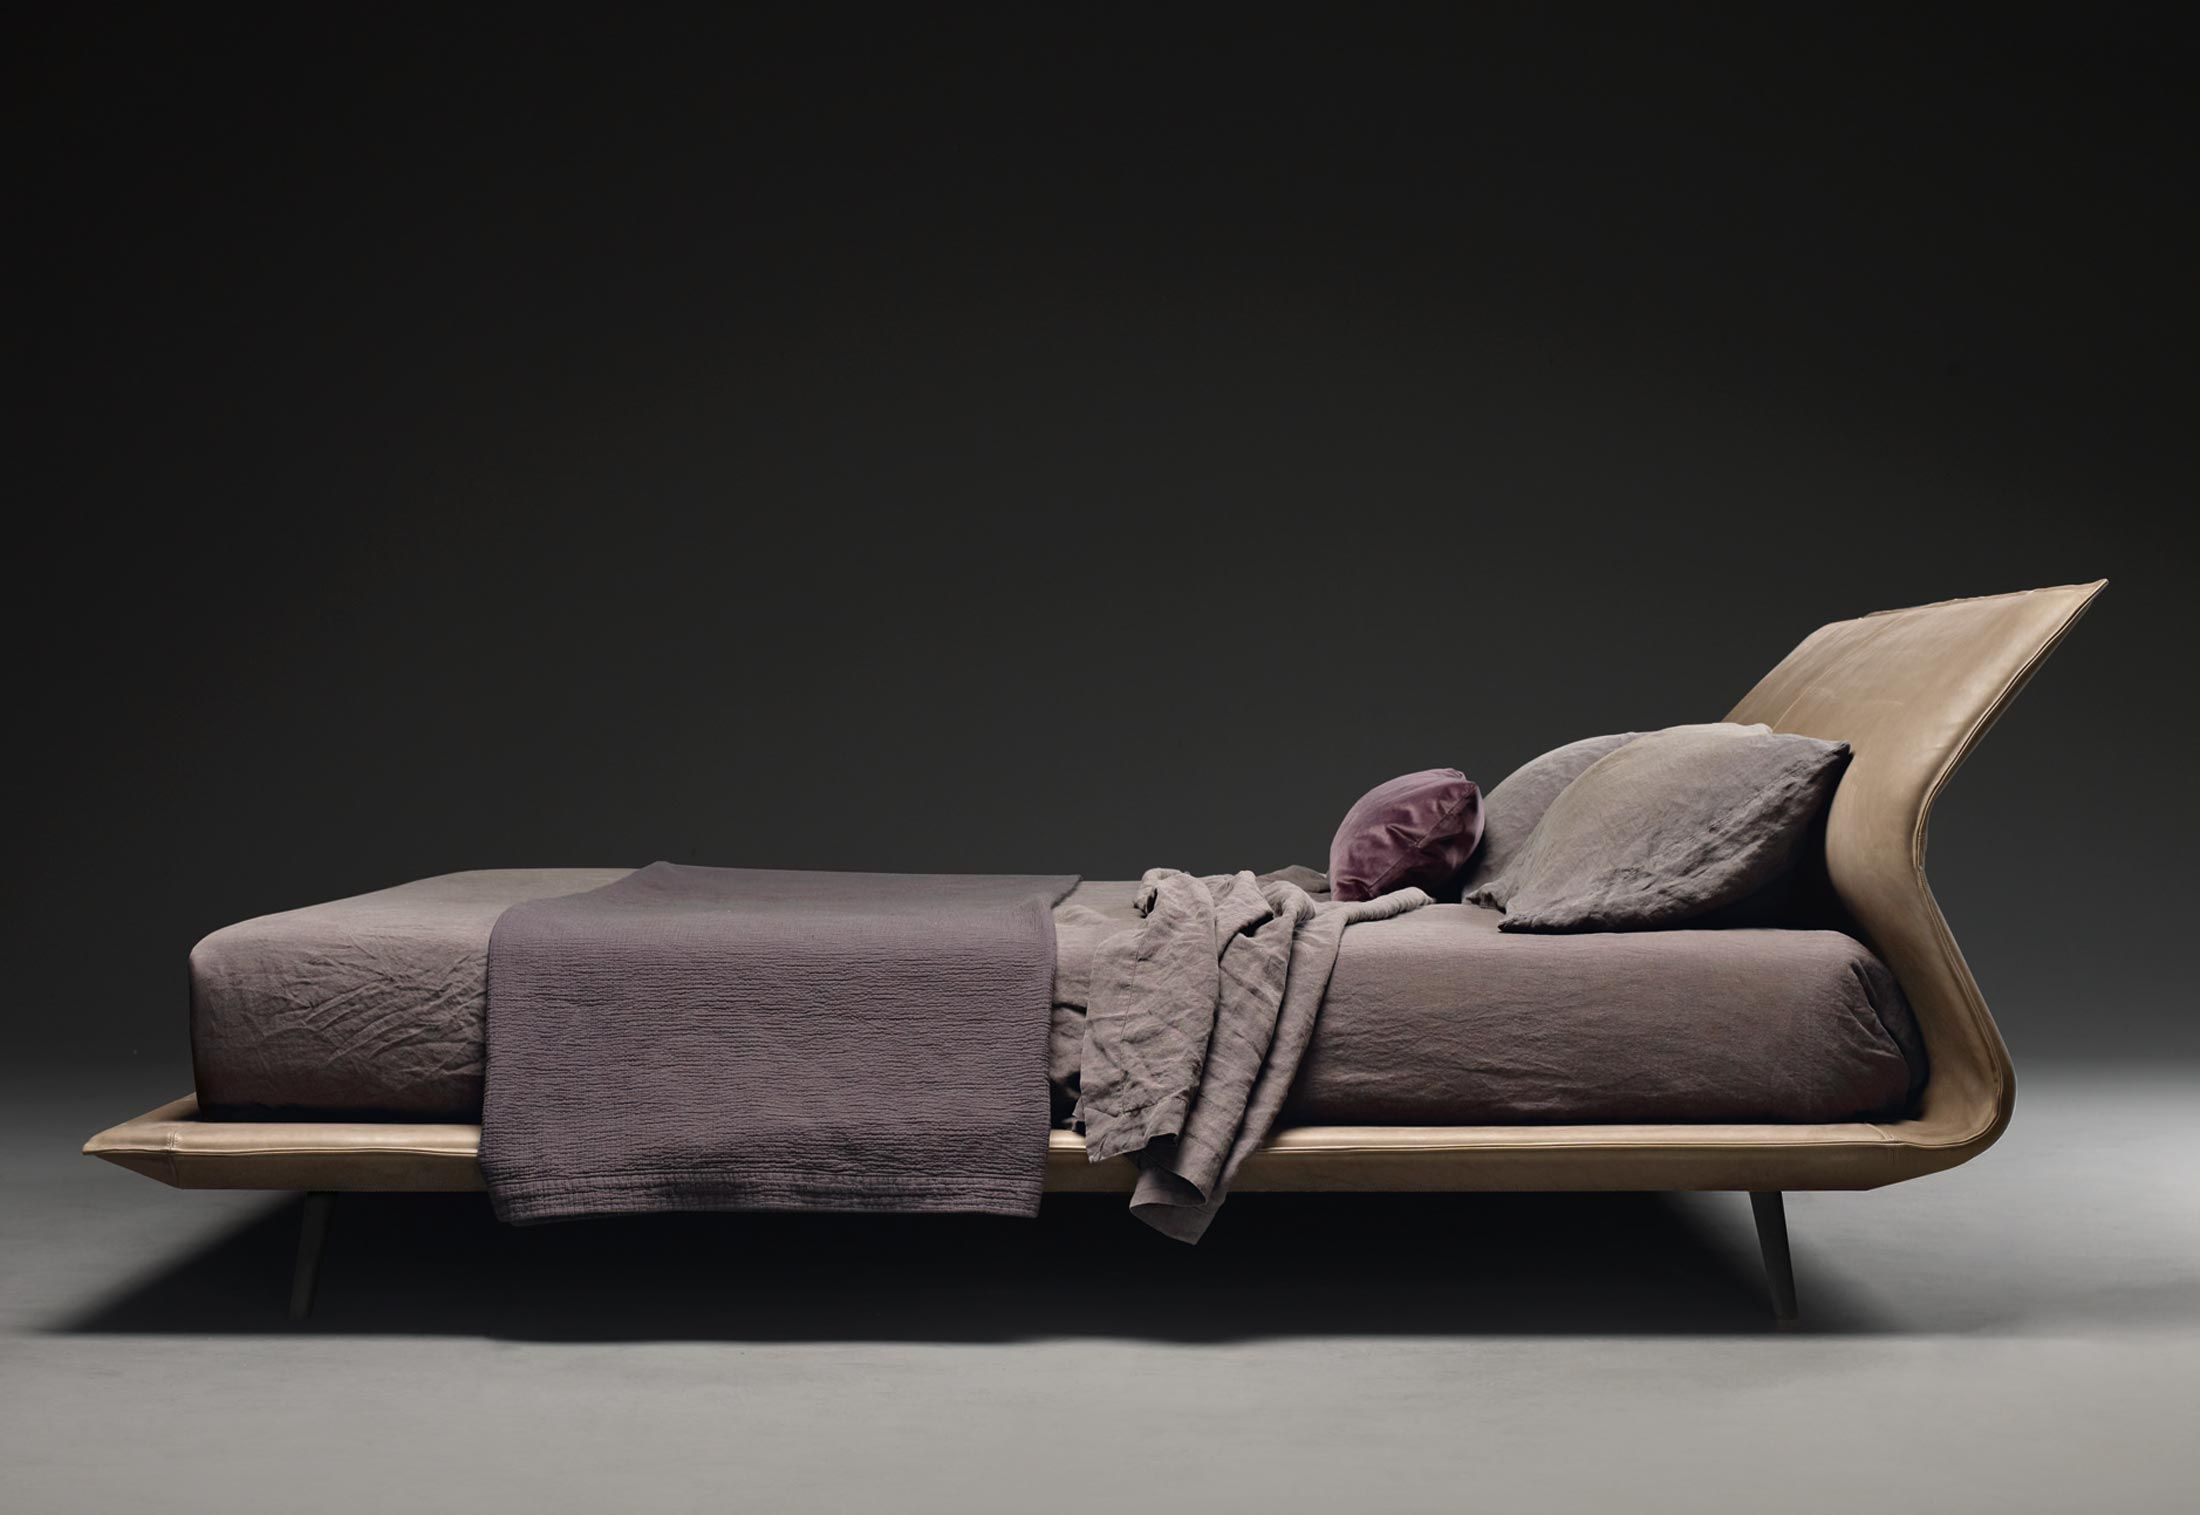 Night u Day bed Patricia Urquiola for Molteni u C Love that bed